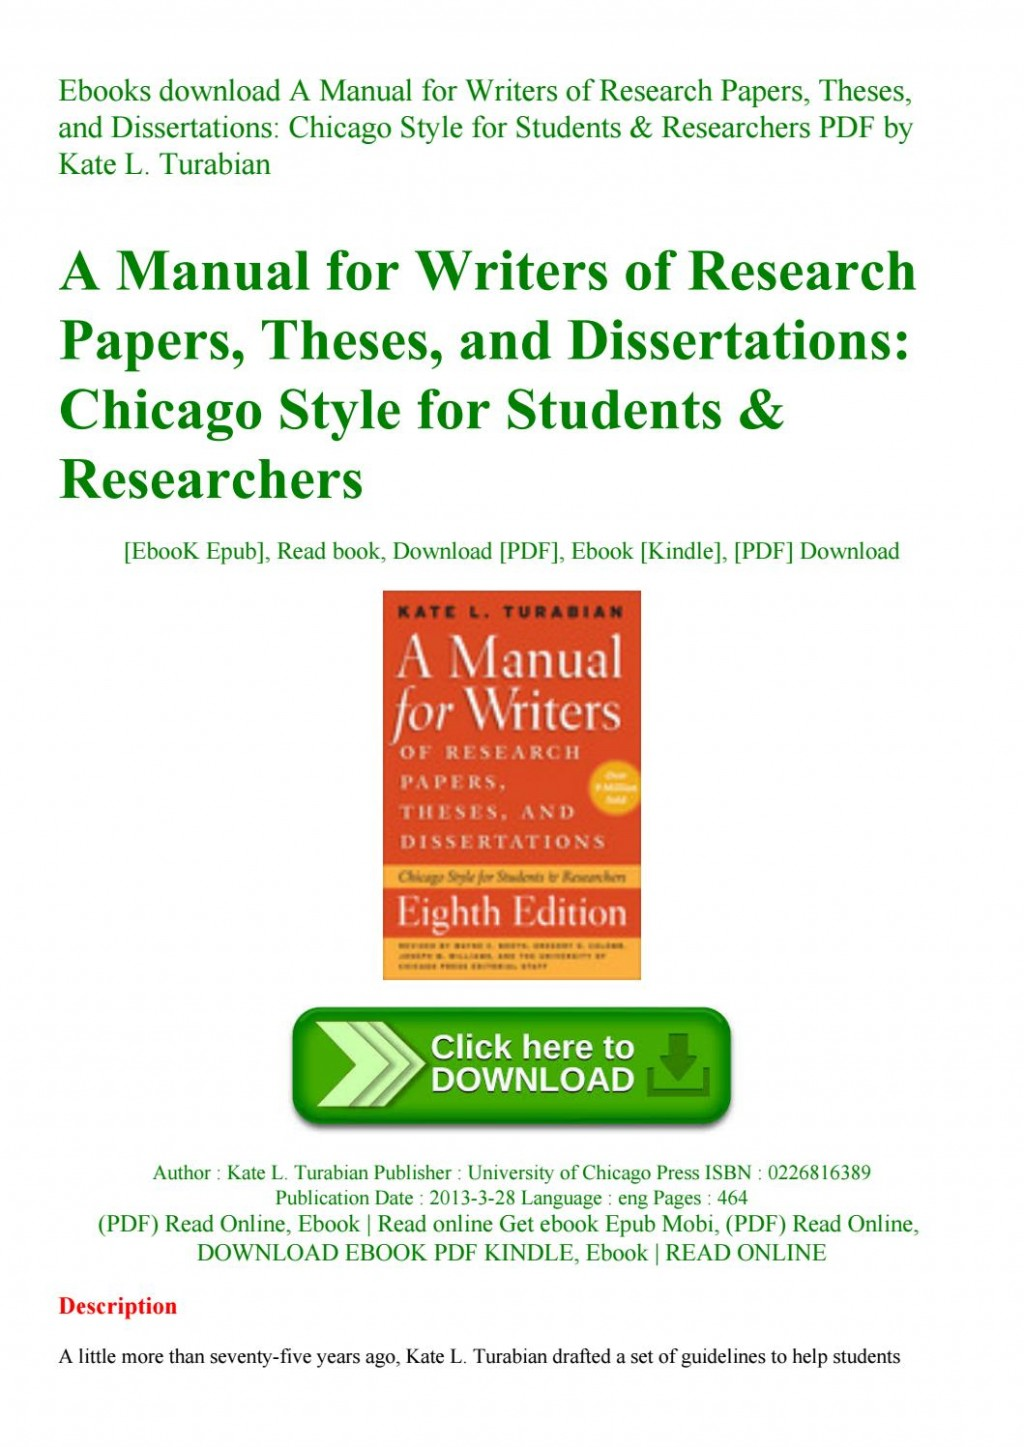 018 Page 1 Research Paper Manual For Writers Of Papers Theses And Sensational A Dissertations Ed. 8 8th Edition Ninth Pdf Large